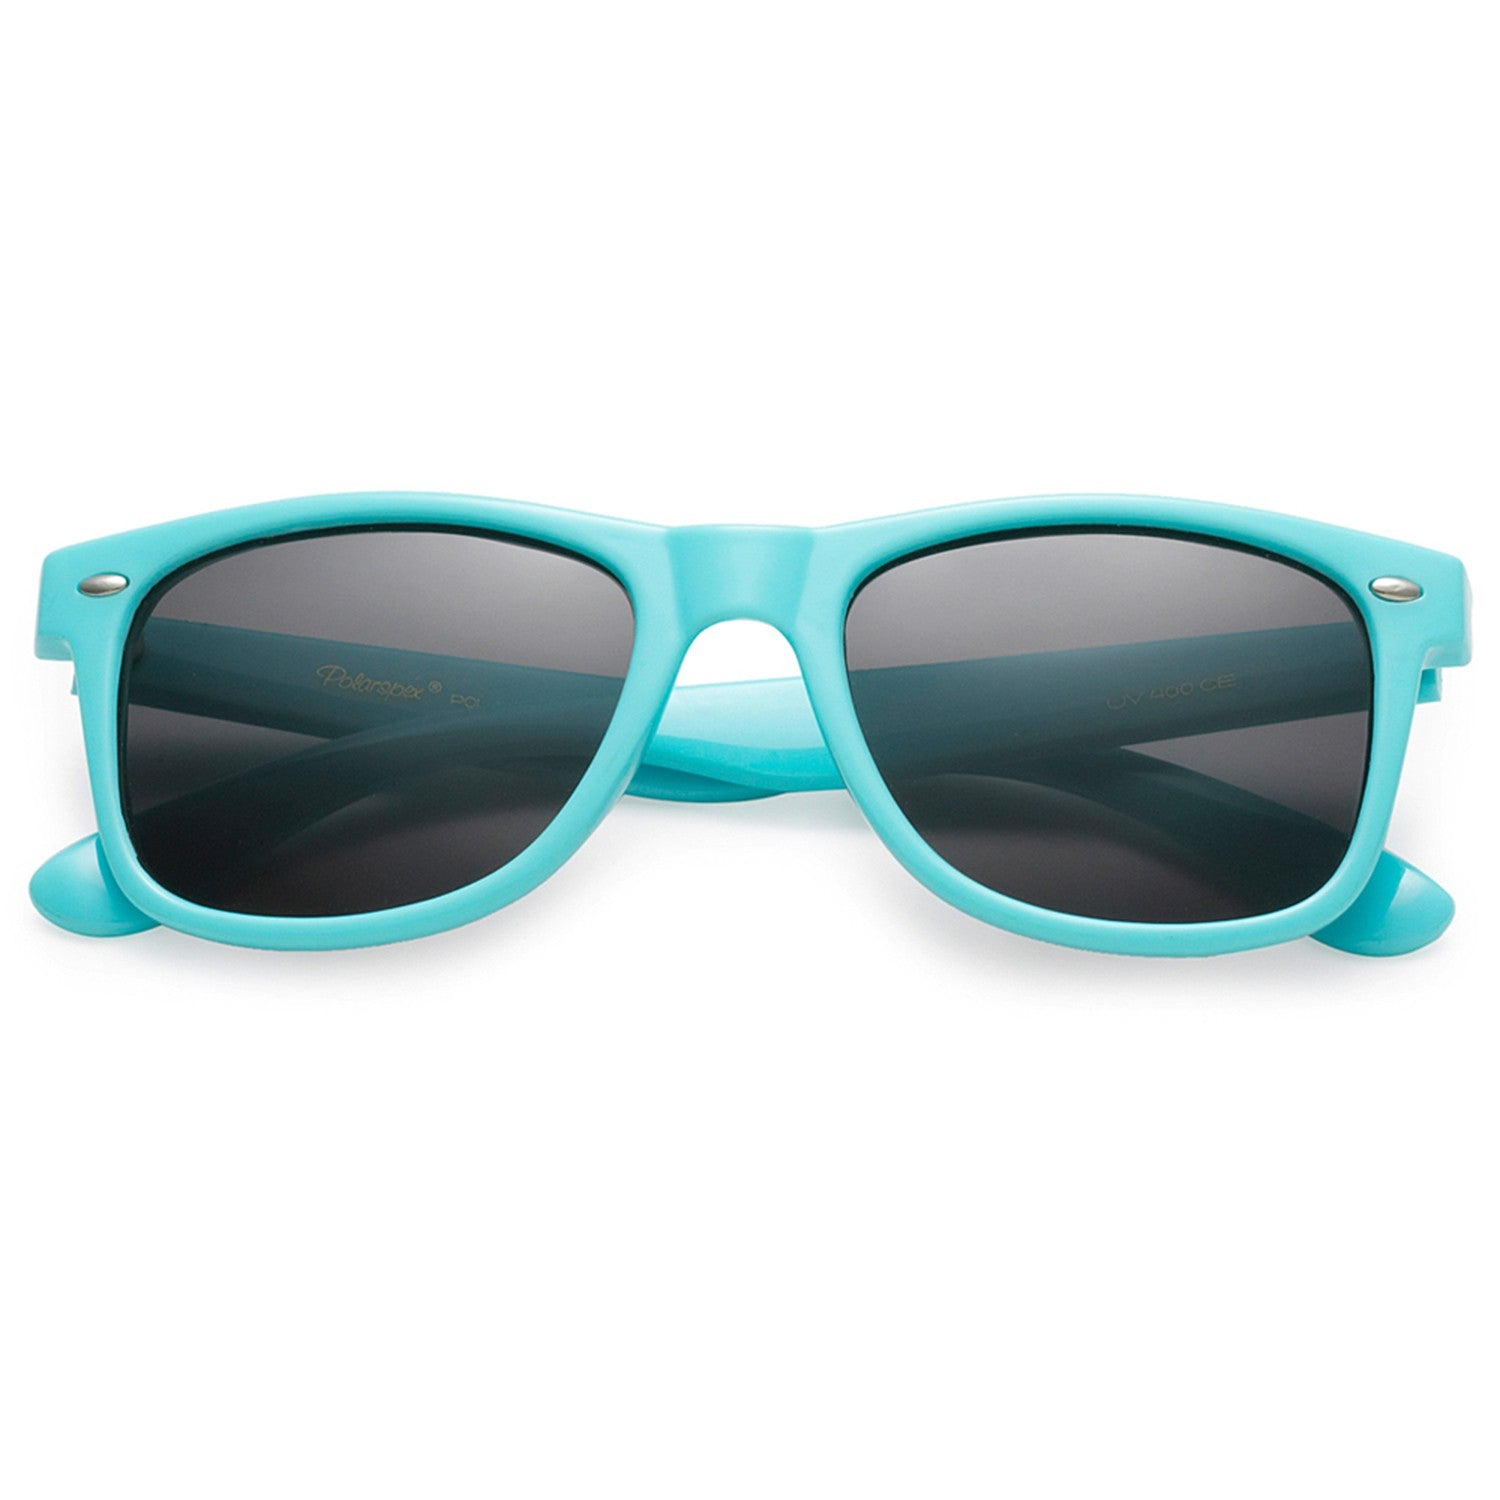 Polarspex Polarized 80's Retro Style Unisex Sunglasses with Aqua Blue Frames and Smoke Lenses